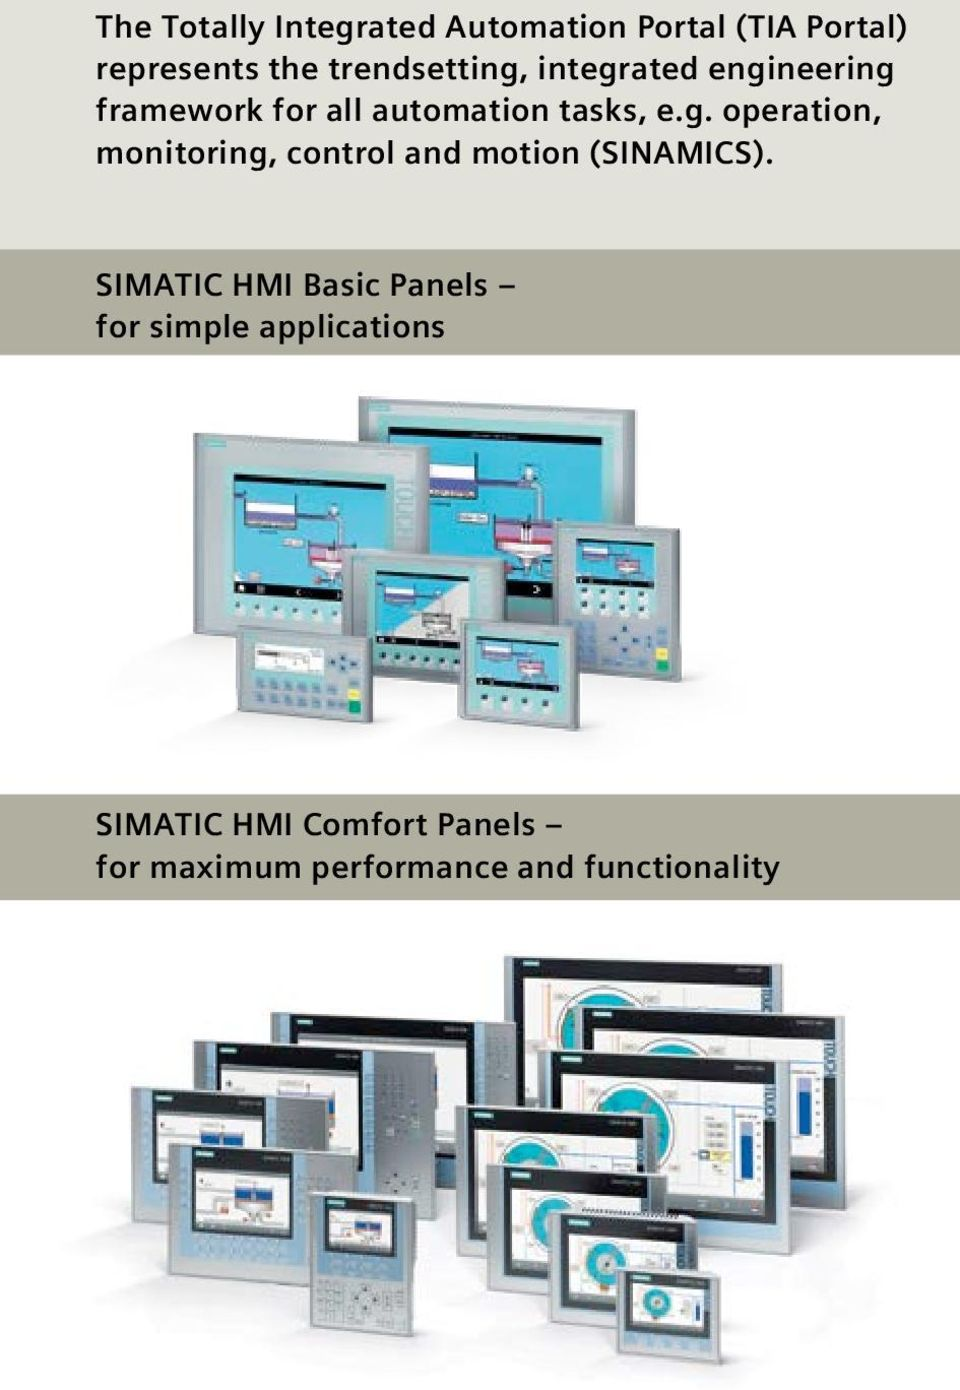 SIMATIC HMI Basic Panels for simple applications SIMATIC HMI Comfort Panels for